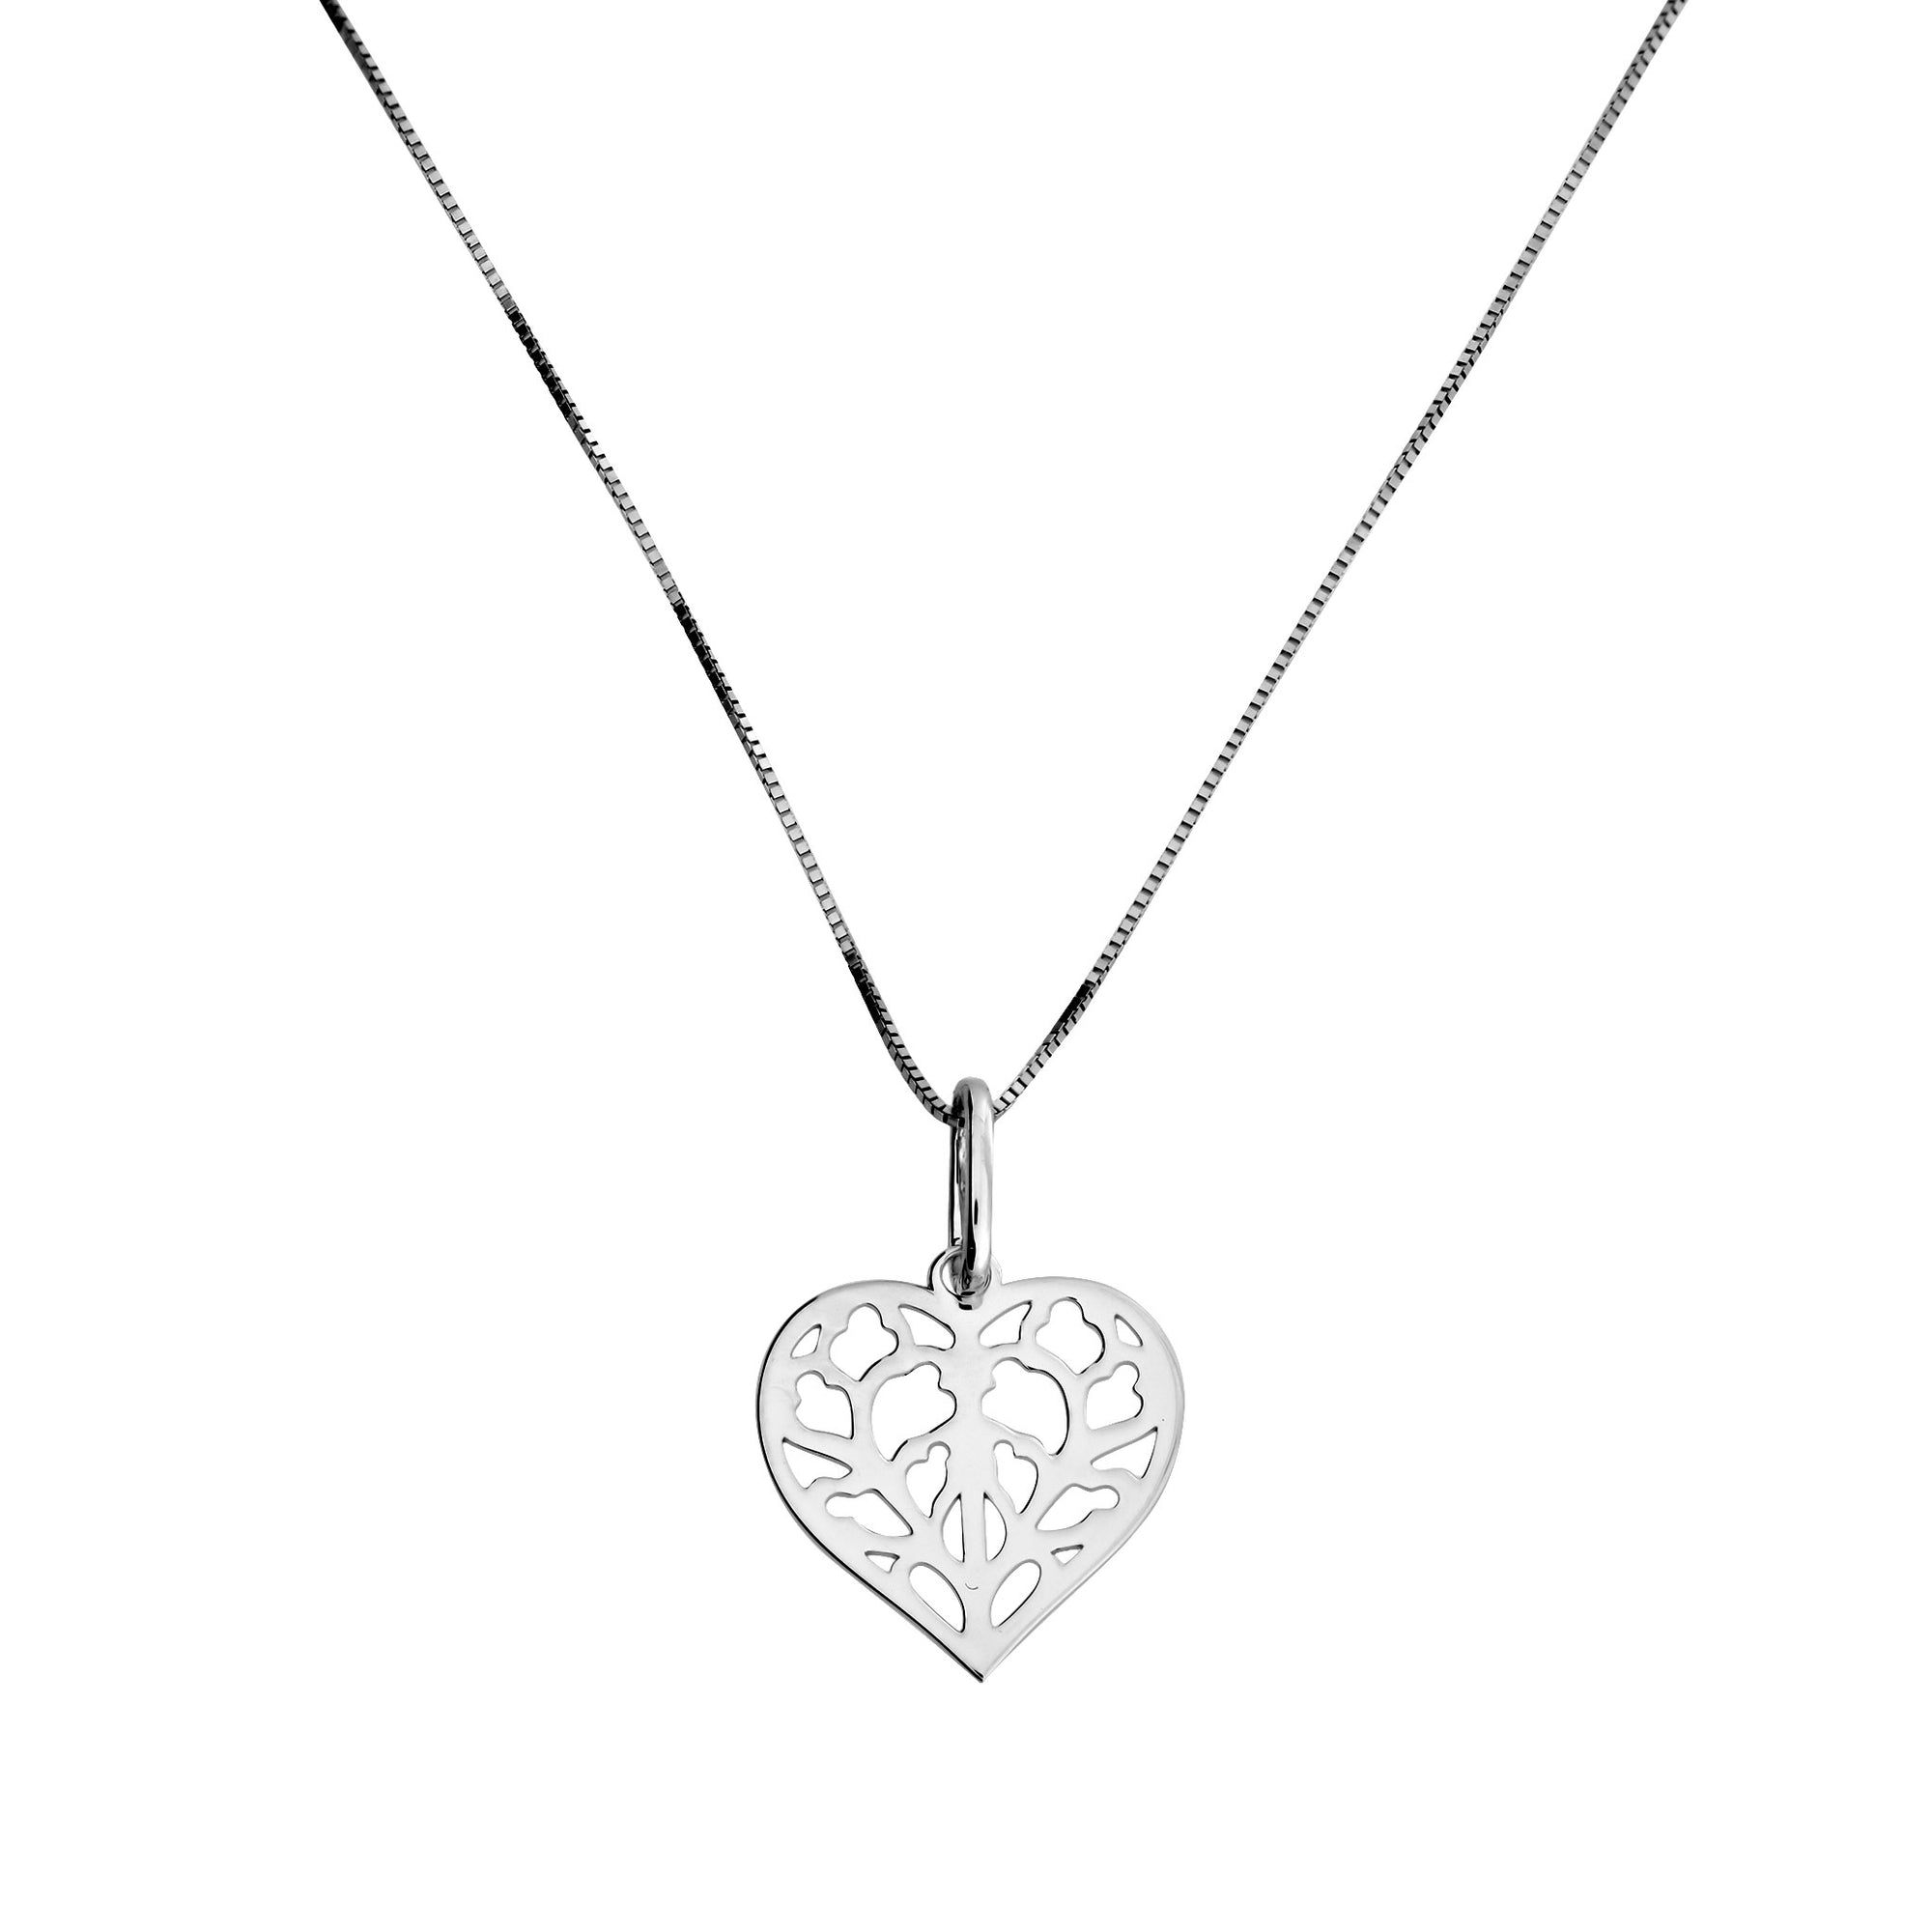 9ct White Gold Heart of Yorkshire Pendant